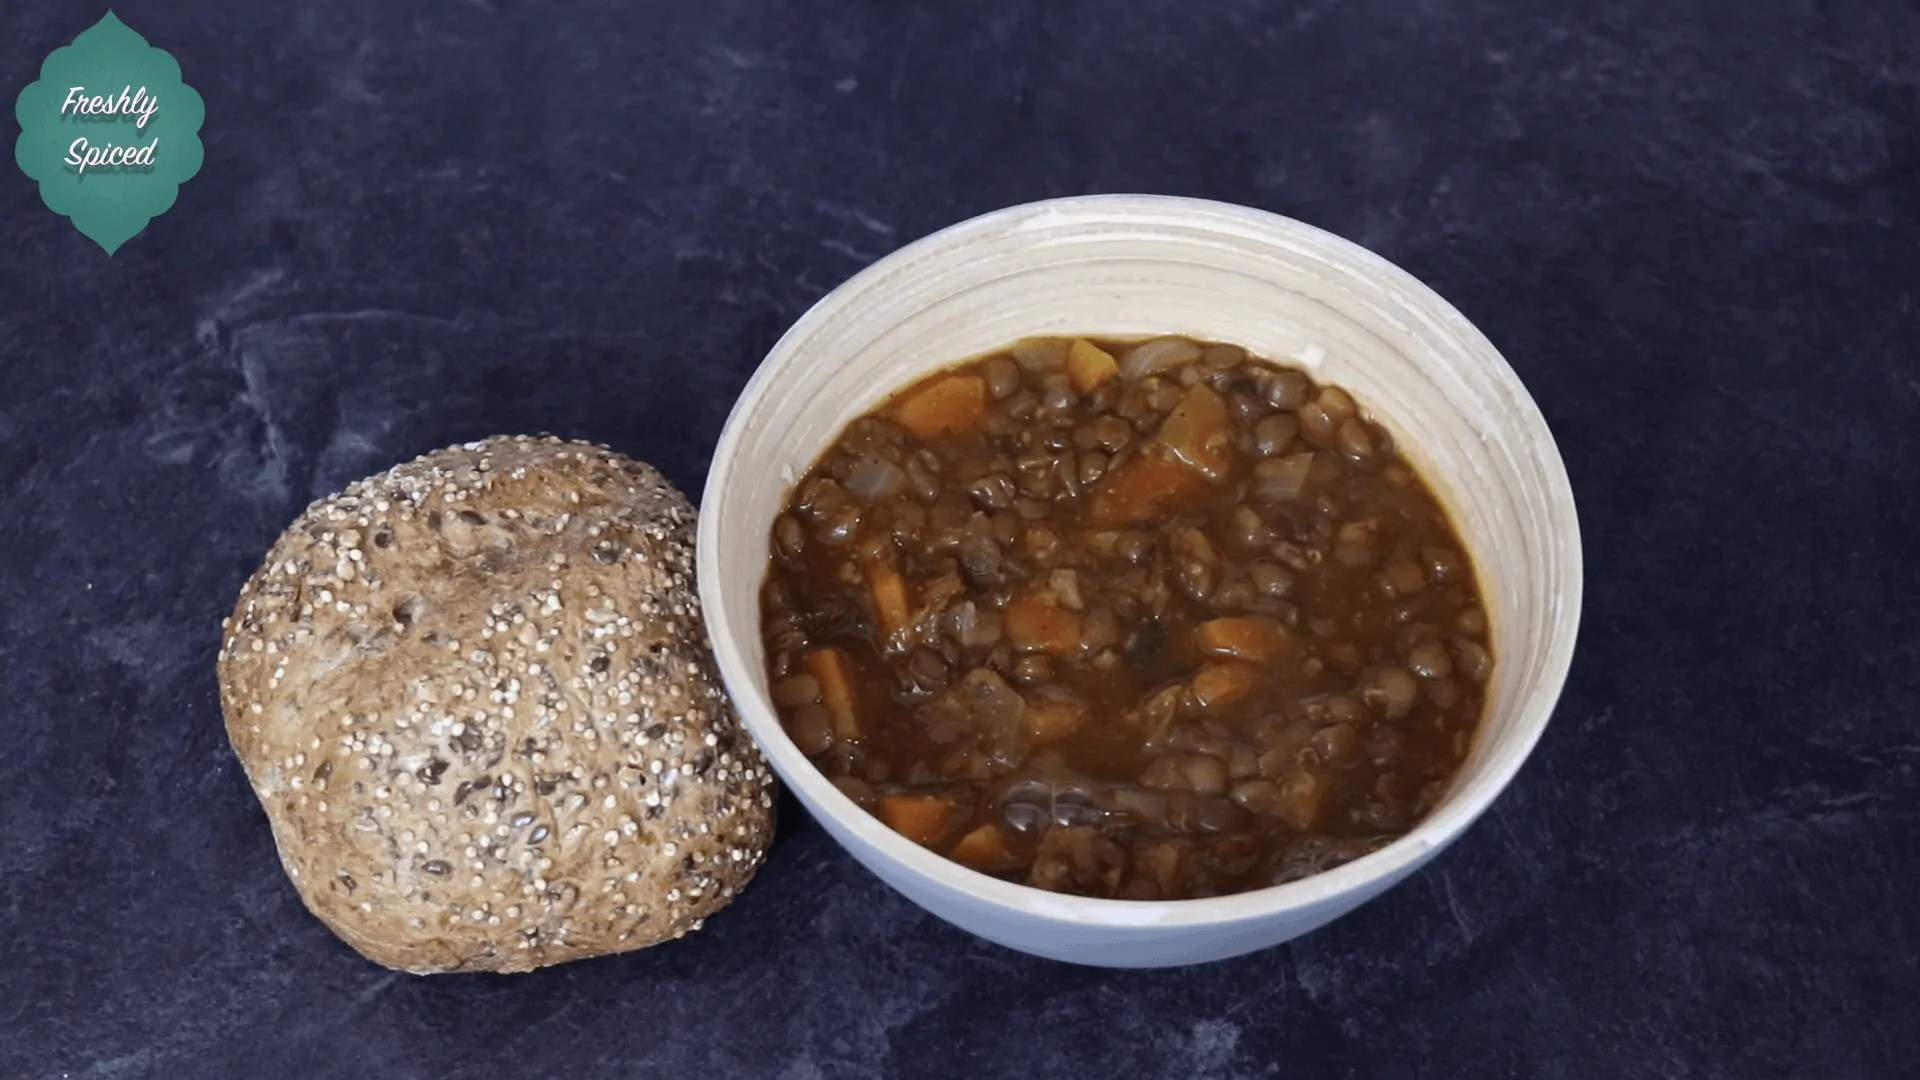 Amazing Spiced Carrot and Lentil Soup Recipe!